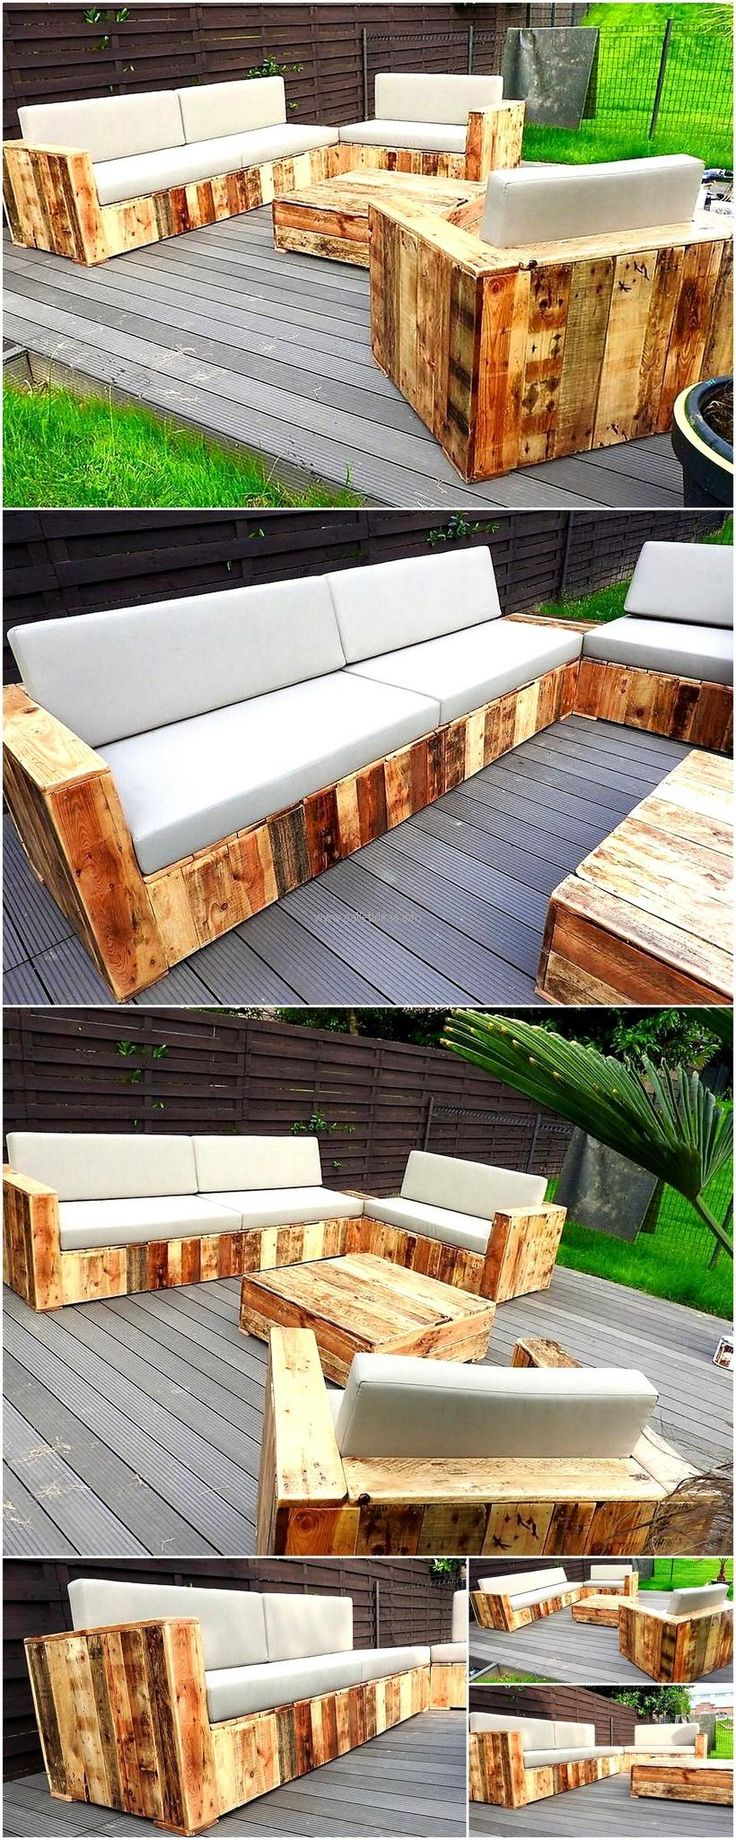 Garden Furniture Stain best 25+ outdoor garden furniture ideas only on pinterest | diy